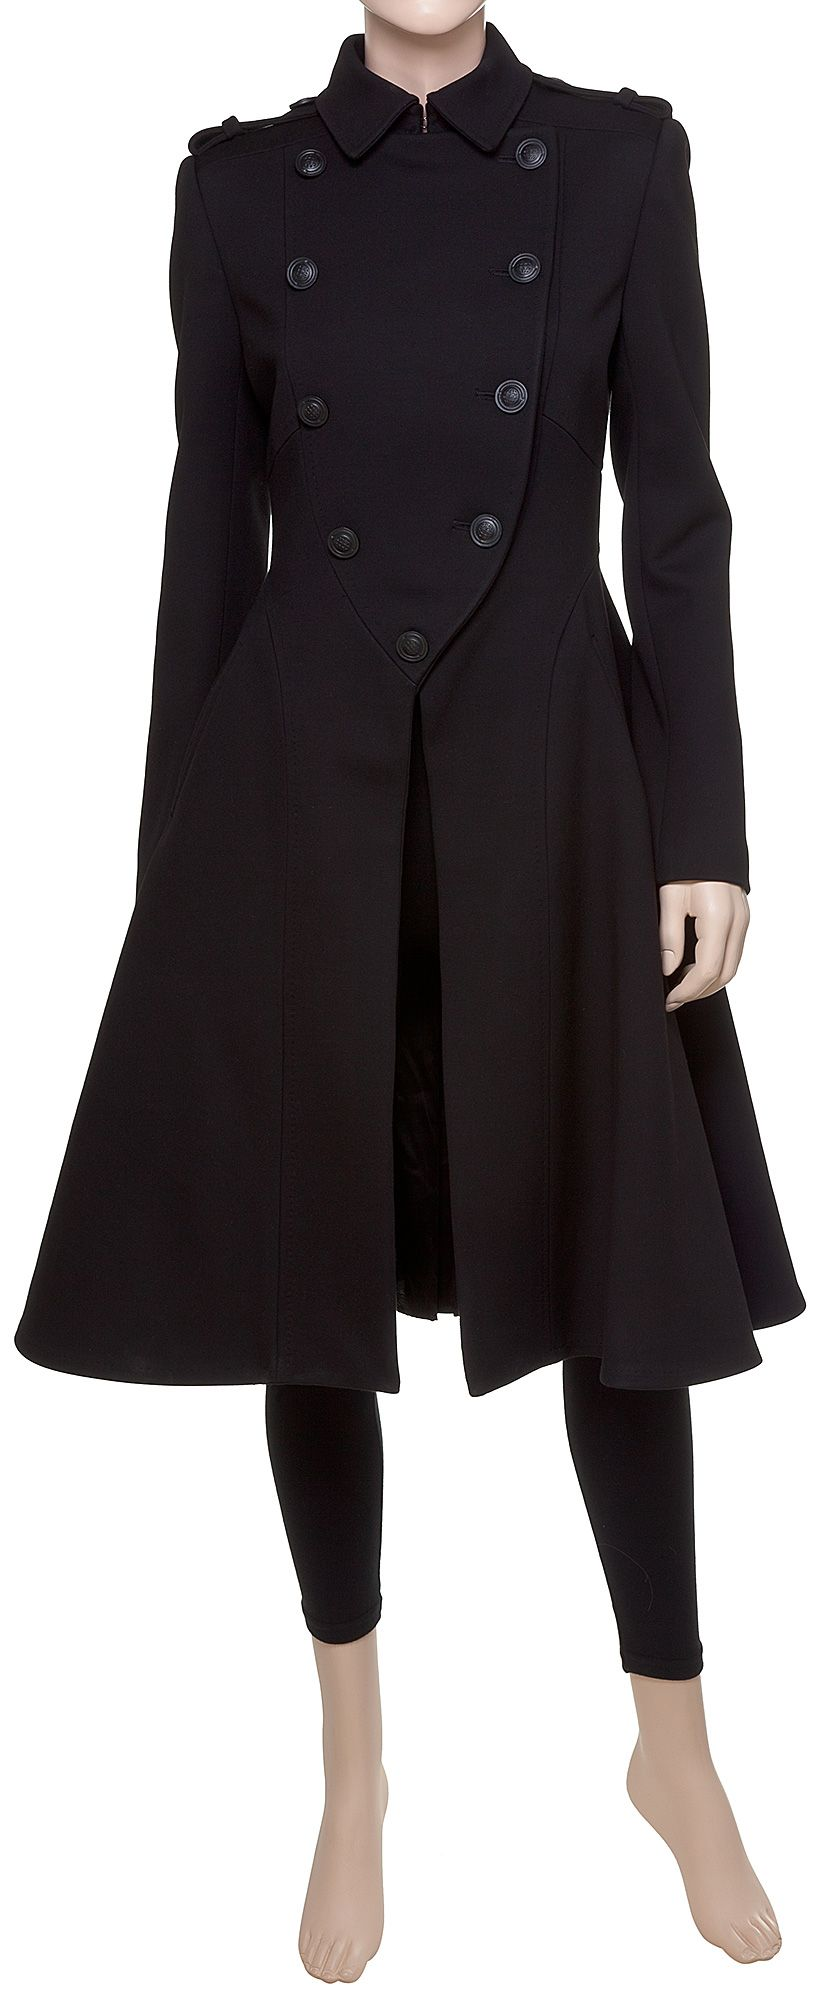 Coat With Front Detail - MAX STUDIO | Goth Style Clothing ...